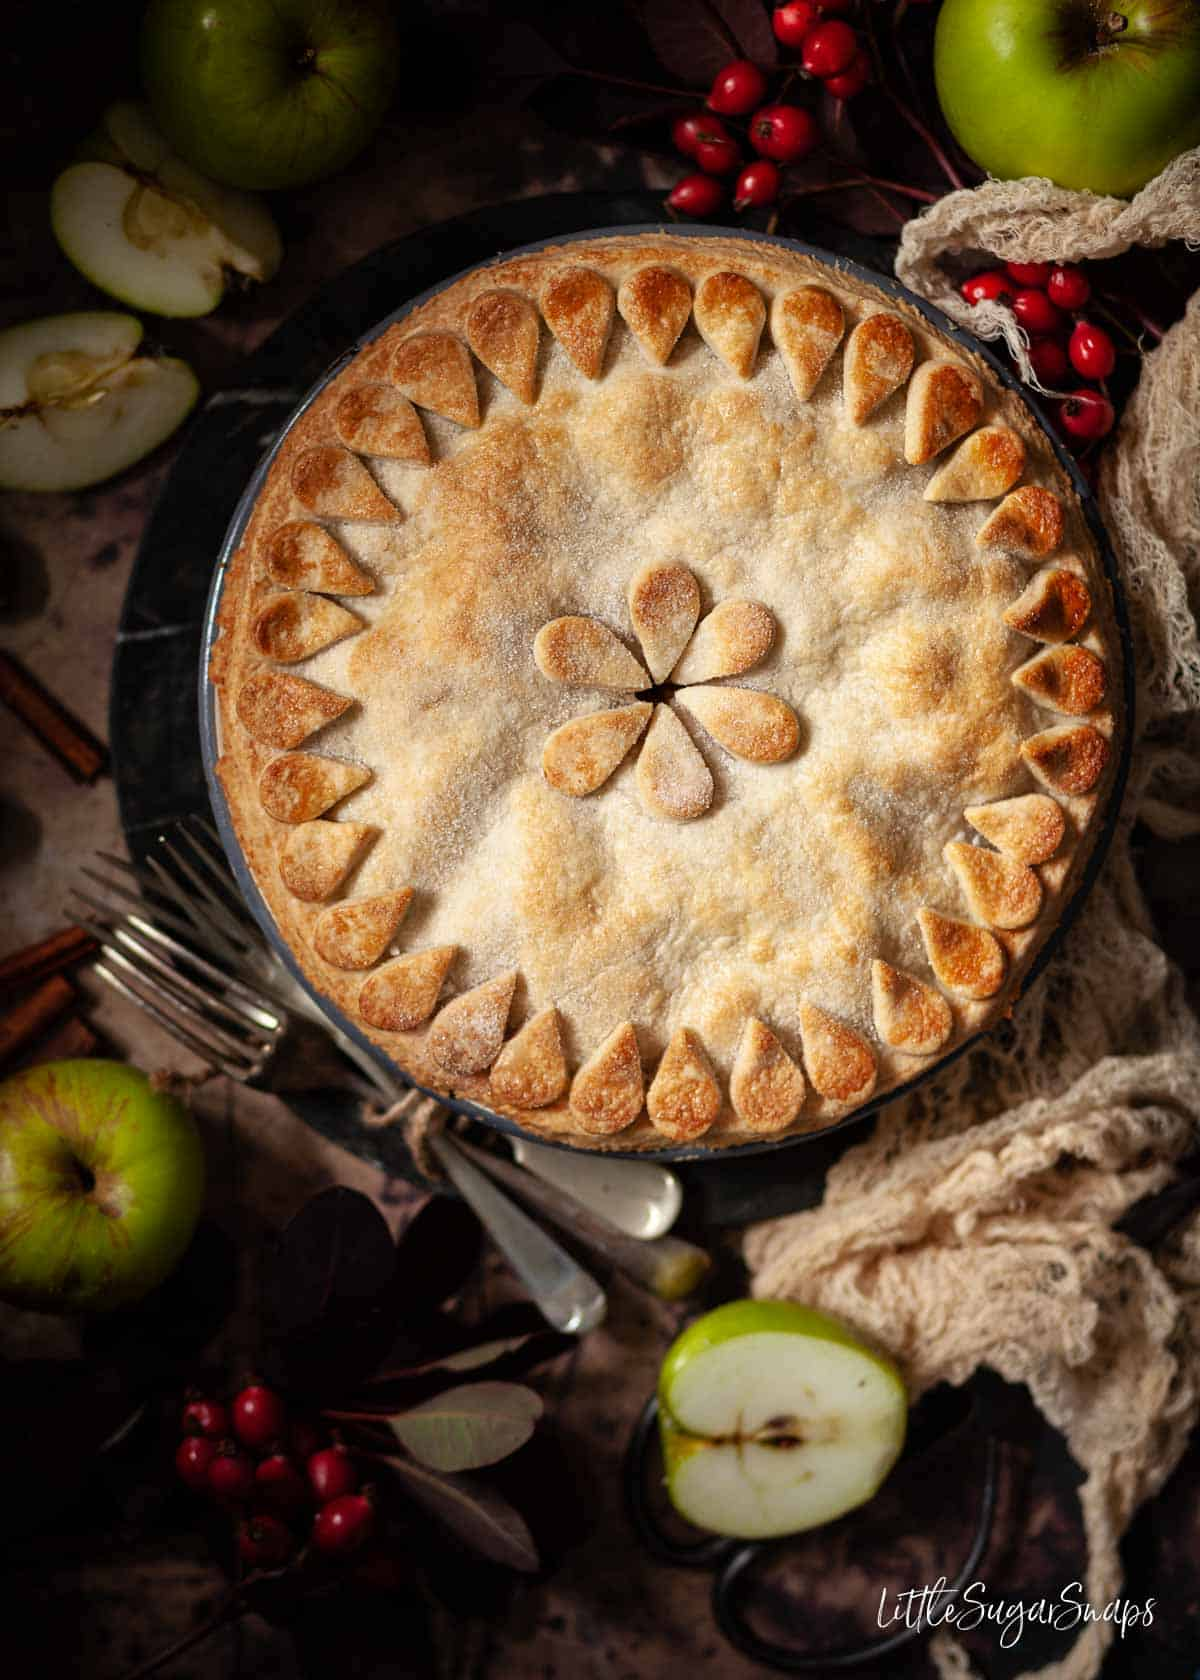 An uncut vegan apple pie with pastry decoration on top